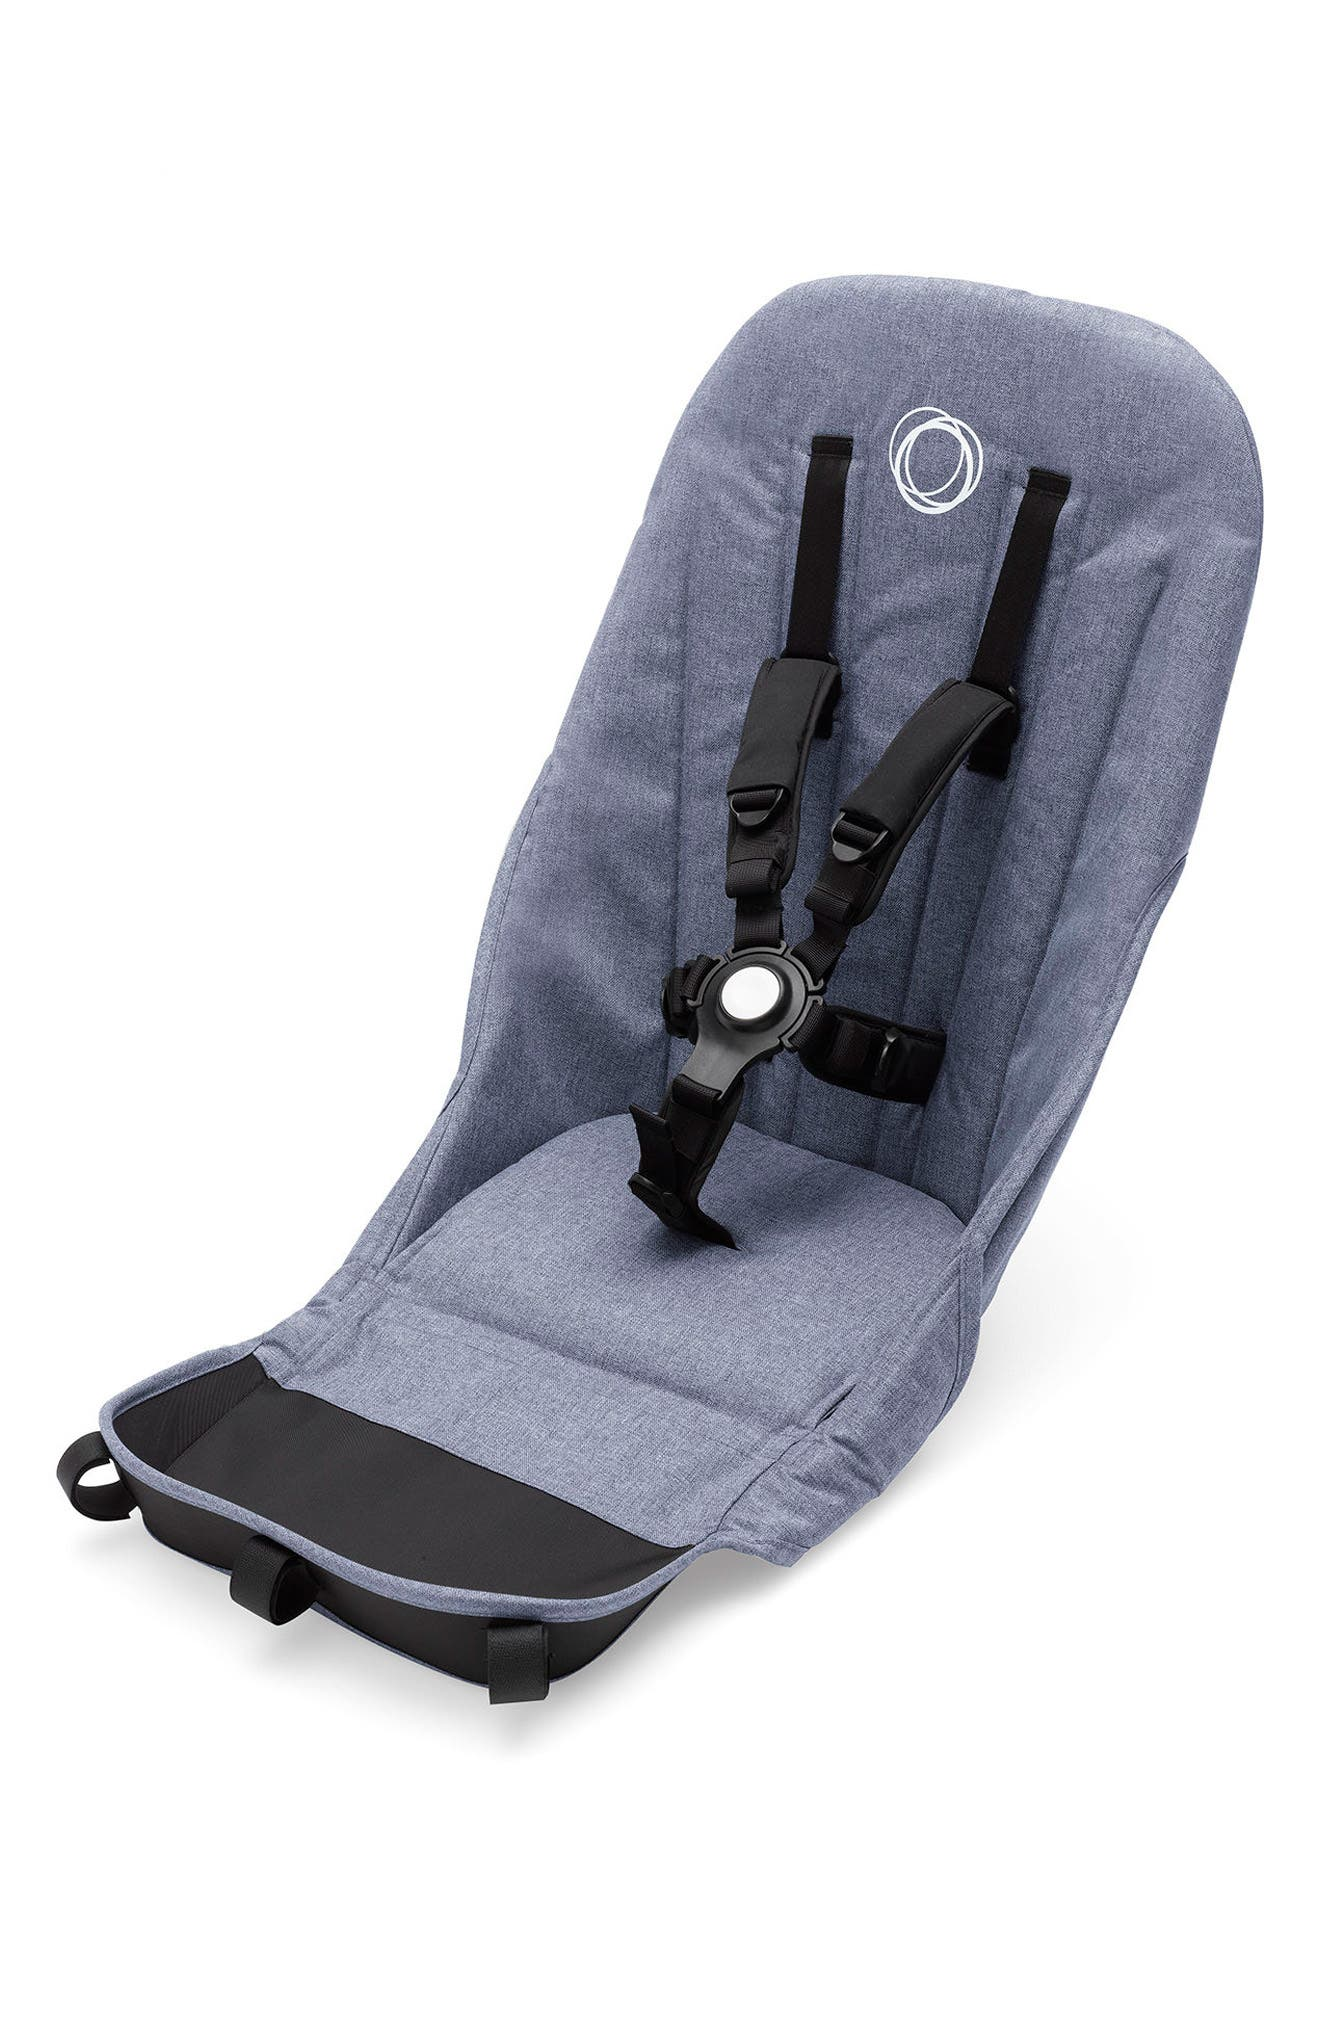 Bugaboo Seat Fabric for Donkey 2 Stroller